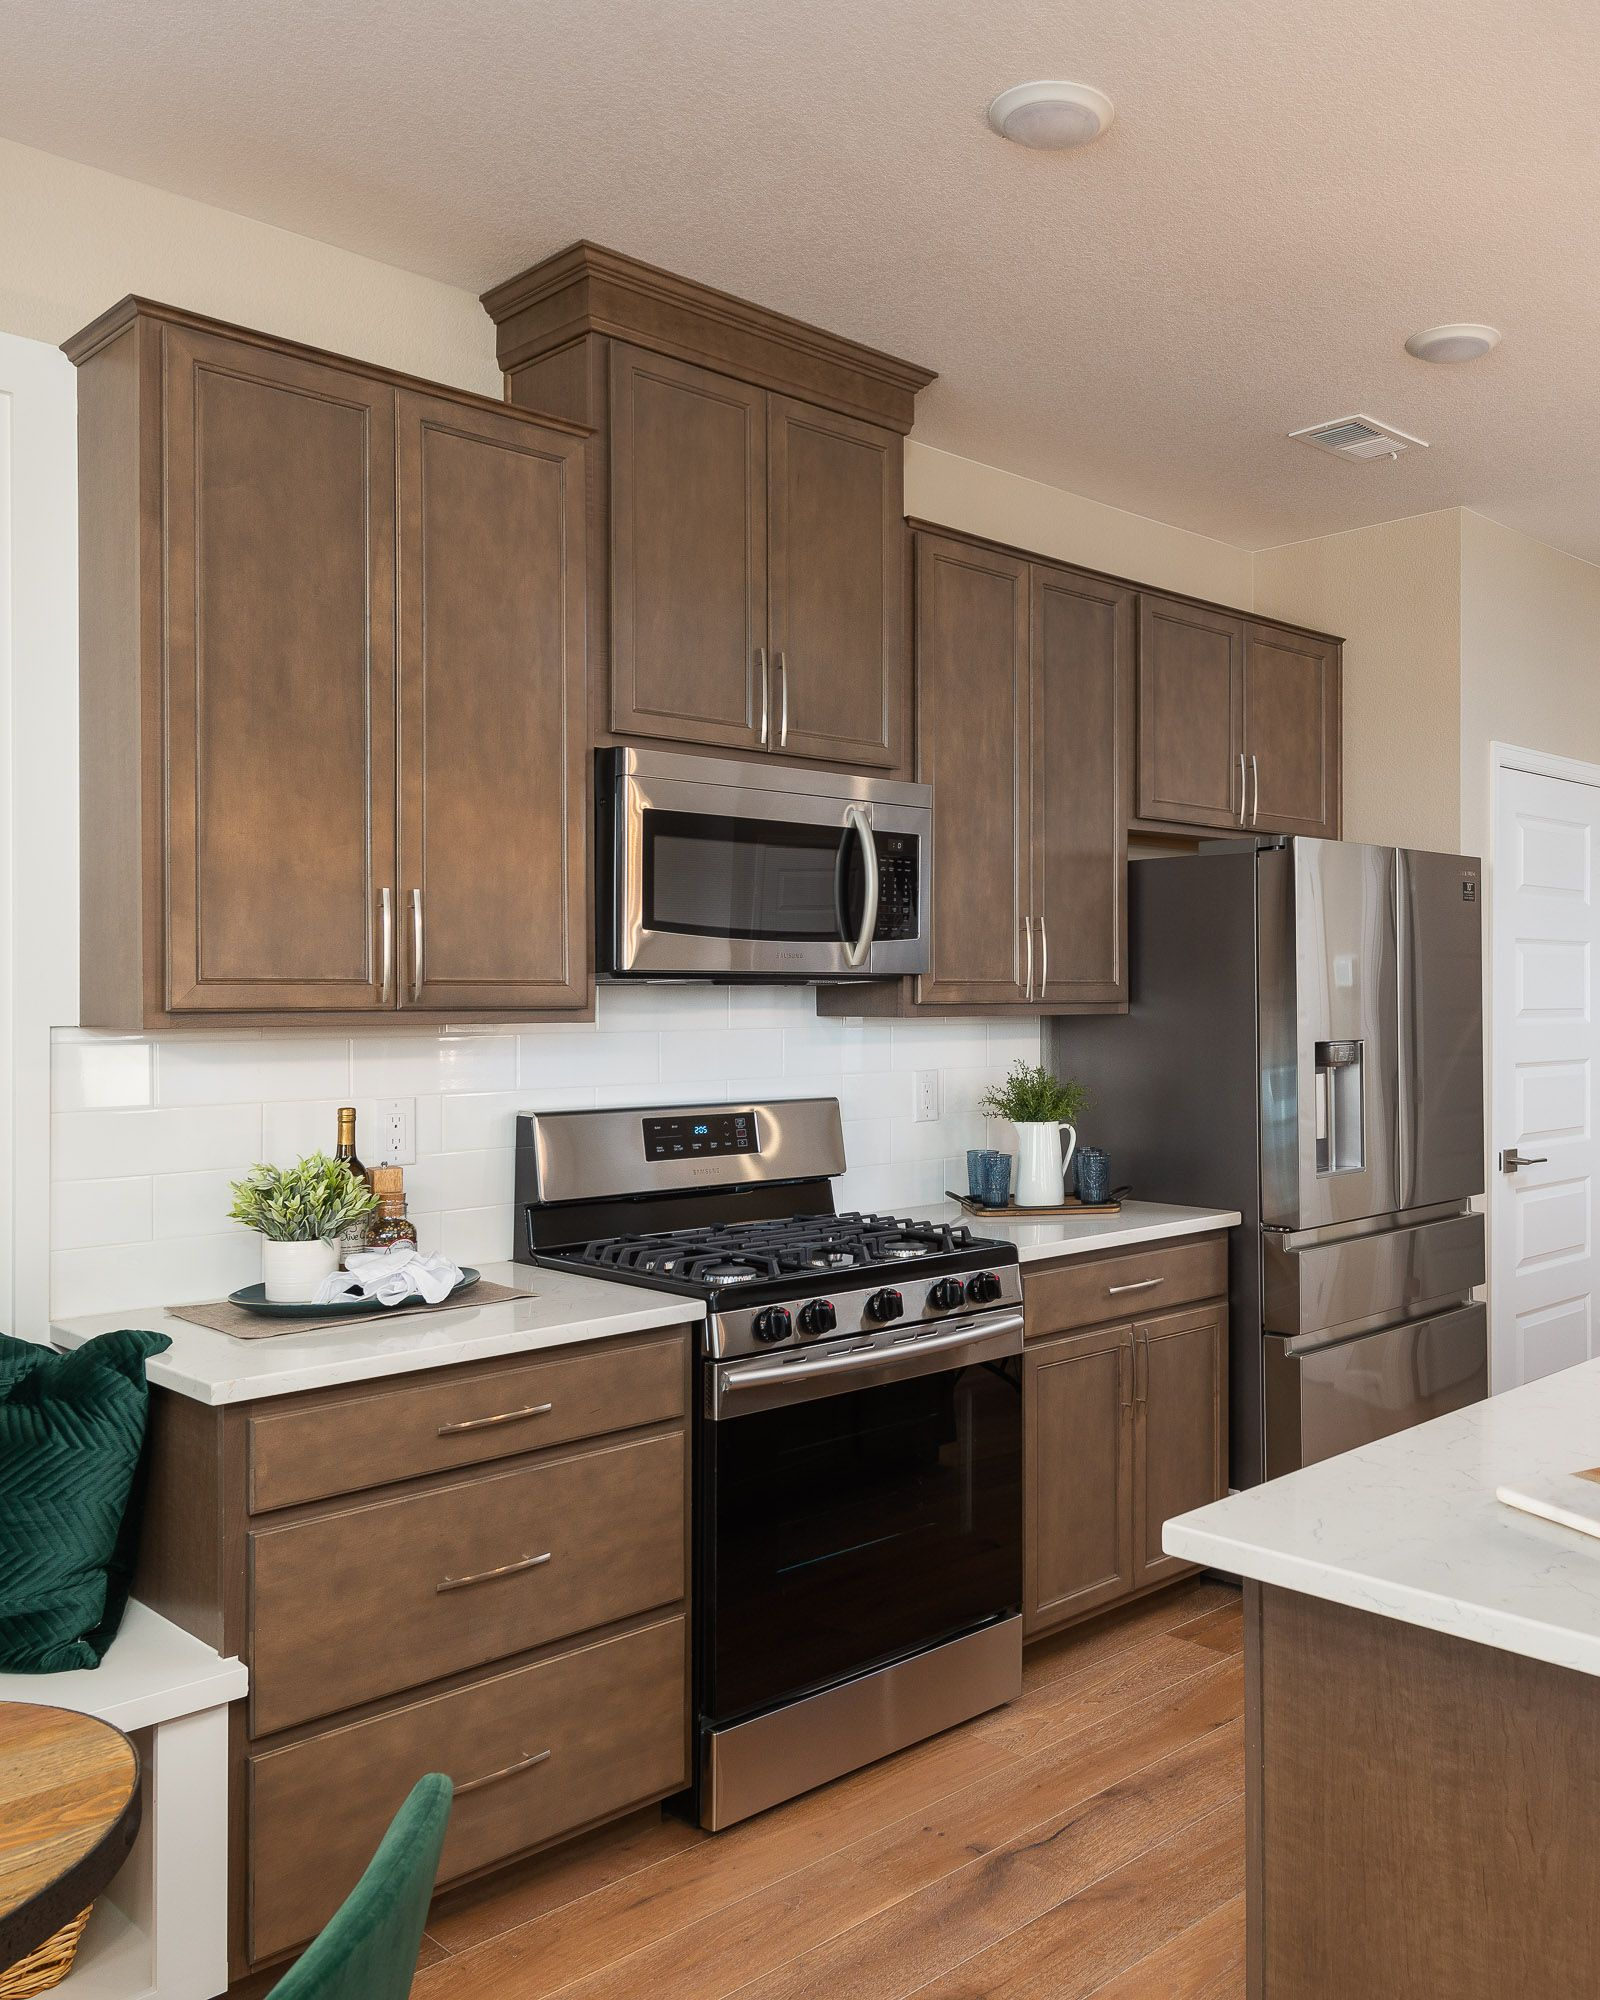 Kitchen featured in the Carlos By Lokal Homes in Denver, CO